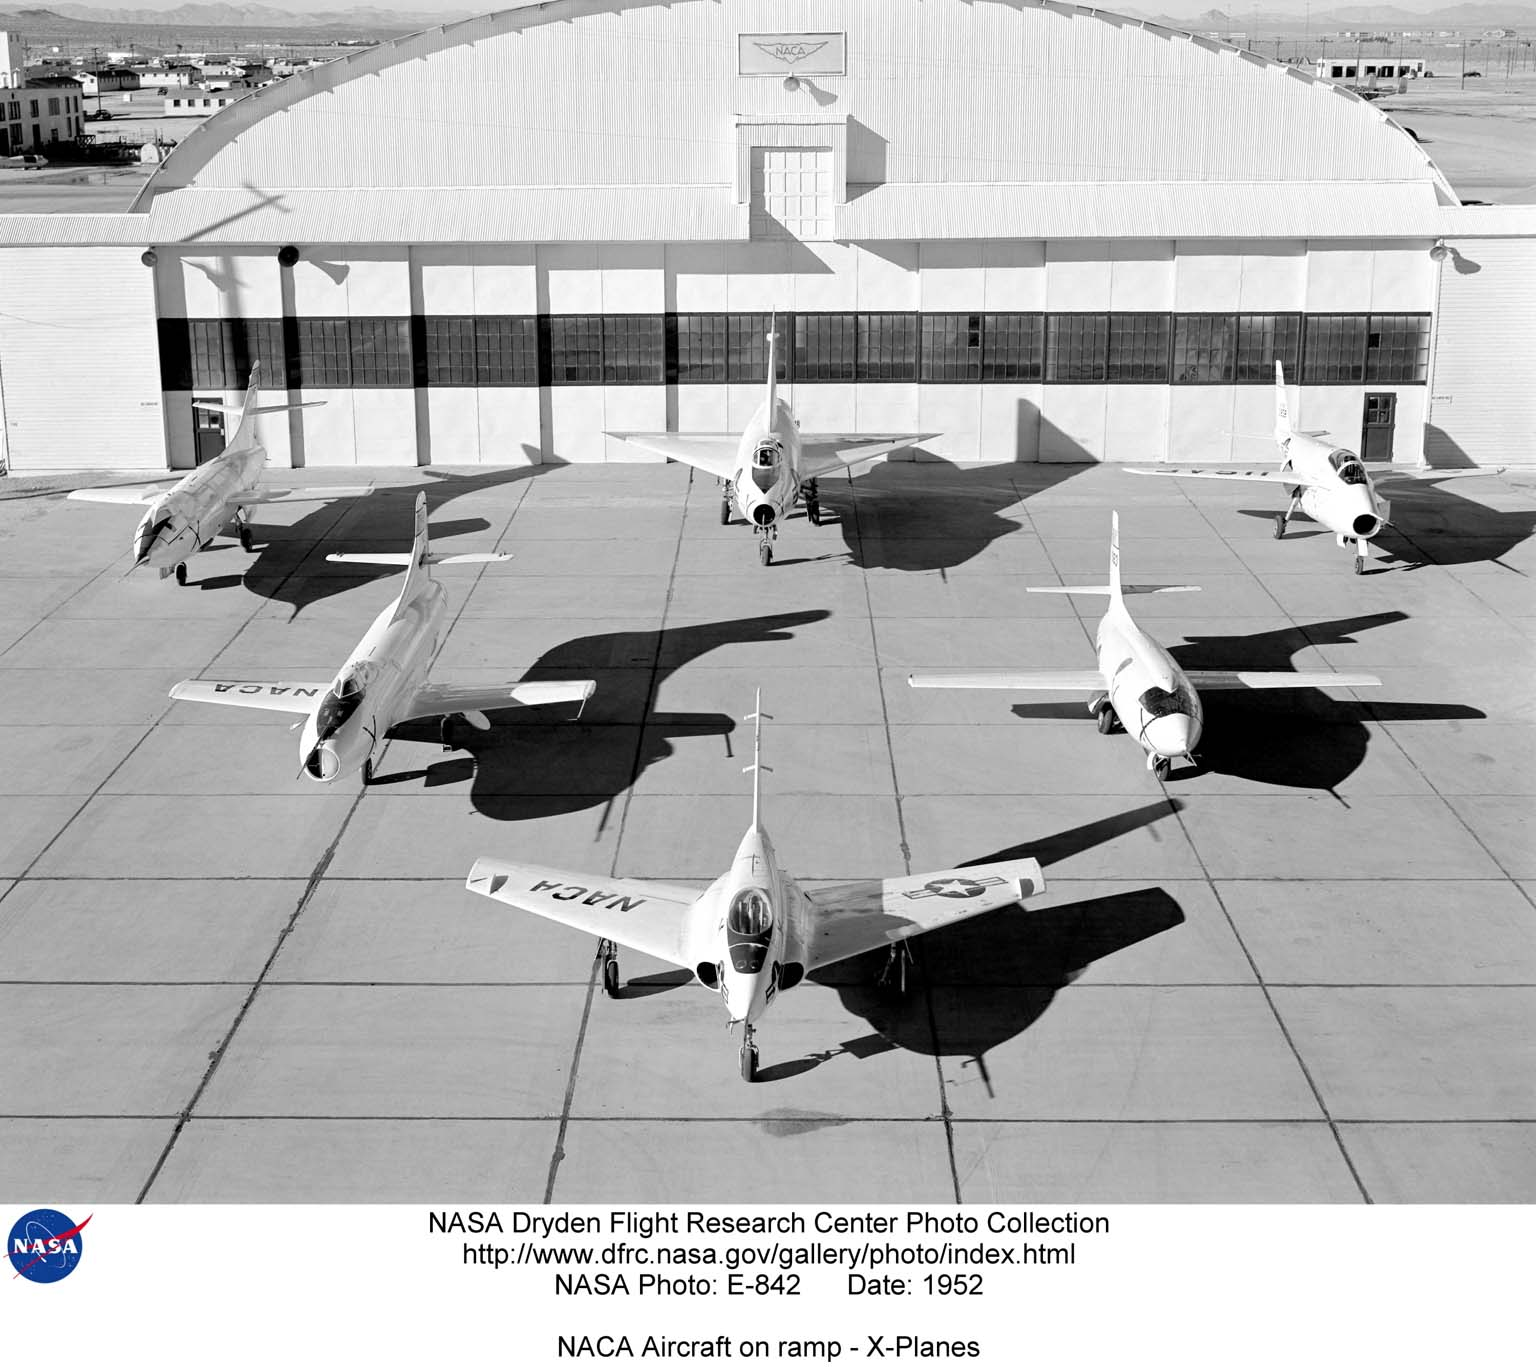 NACA High Speed Flight Station aircraft at South Base. Clockwise from far left: D-558-II, XF-92A, X-5, X-1, X-4, and D-558-I.